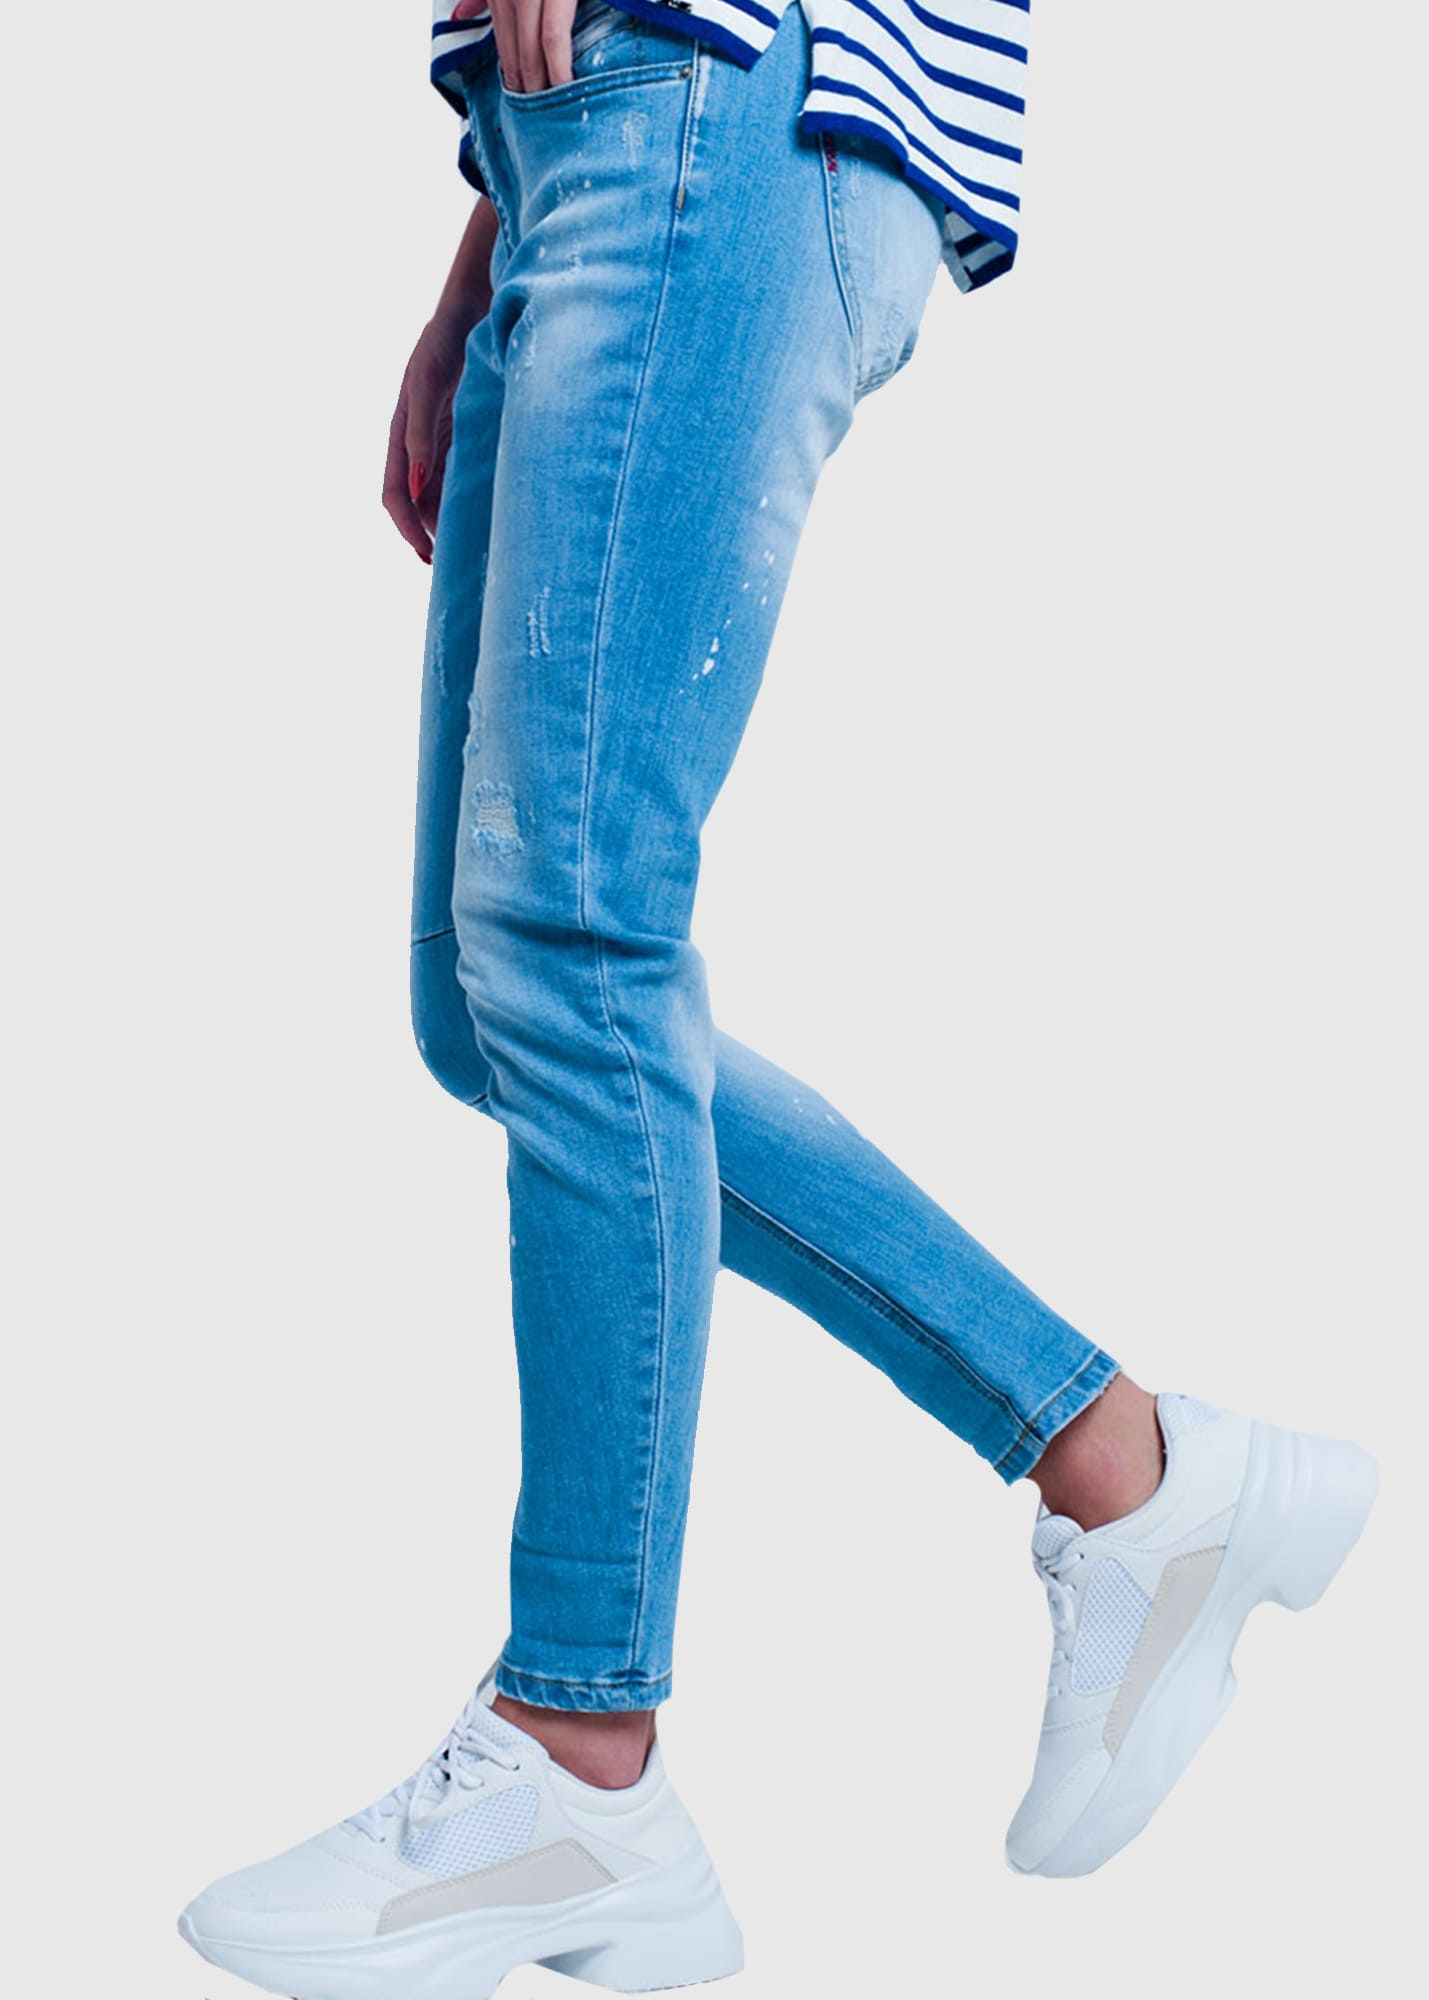 Photo №2 Slim Fit women's distressed jeans